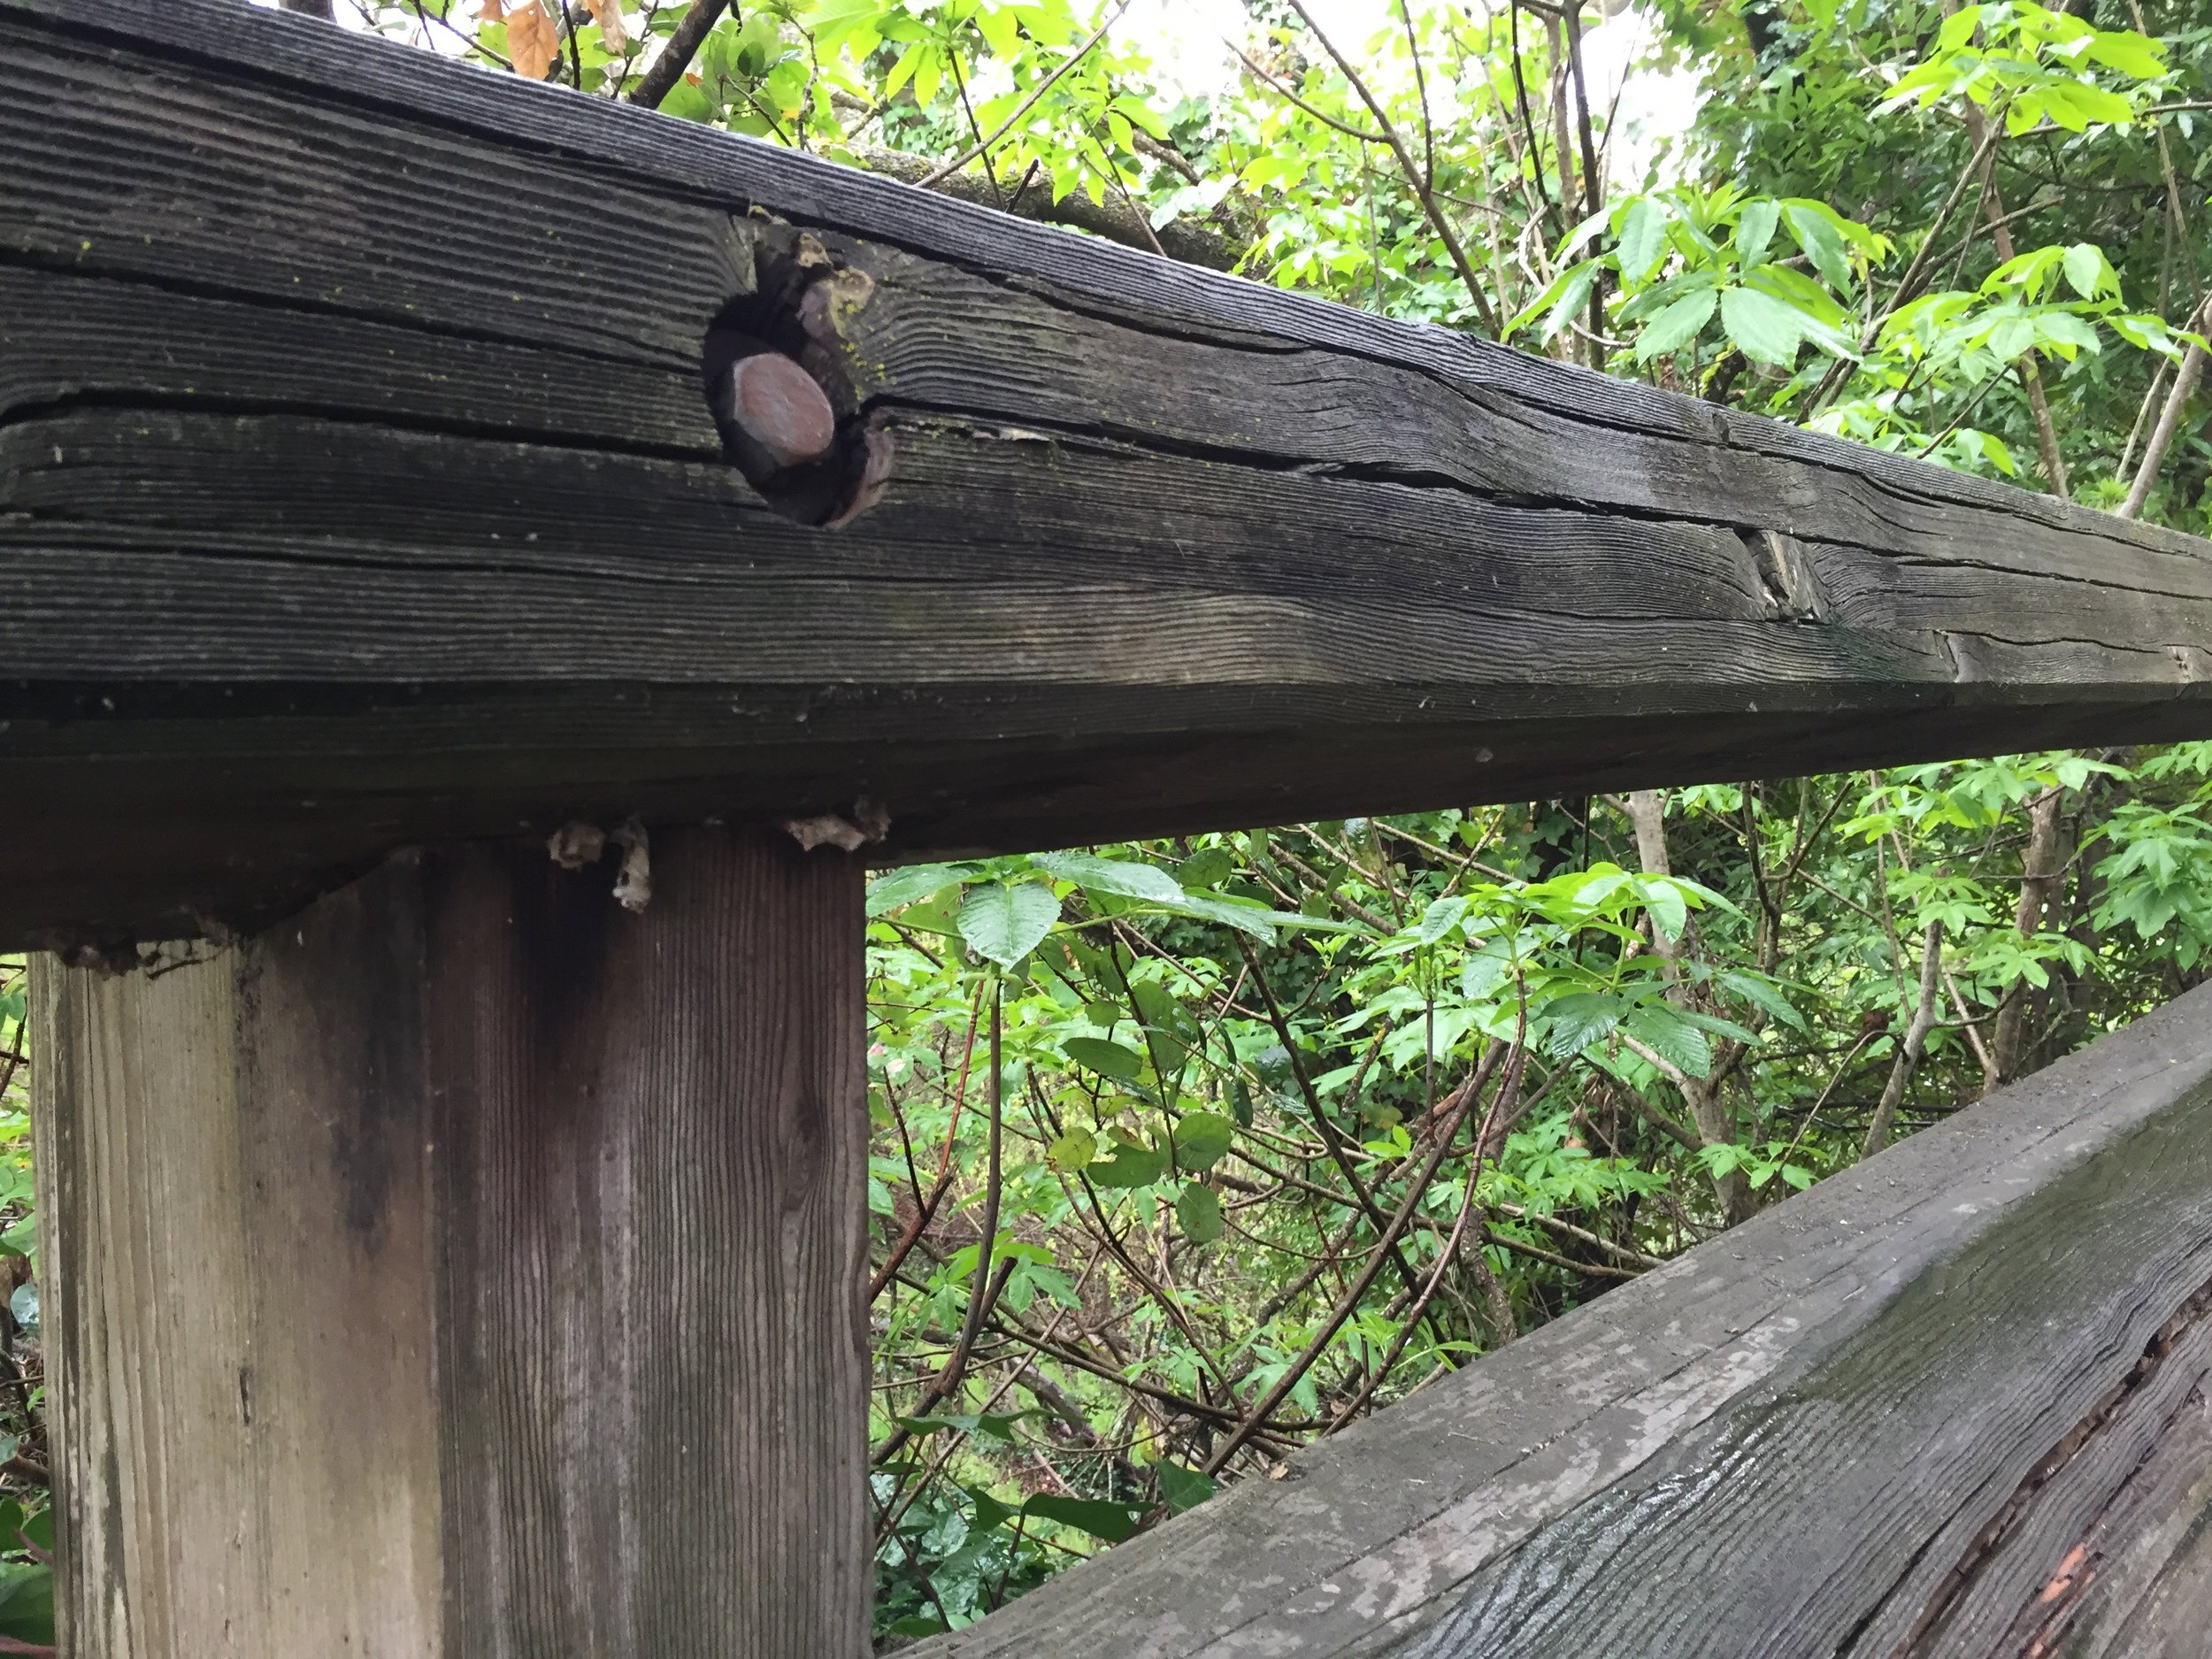 This is the bridge fence top rail; you can see some empty cocoons hanging down.